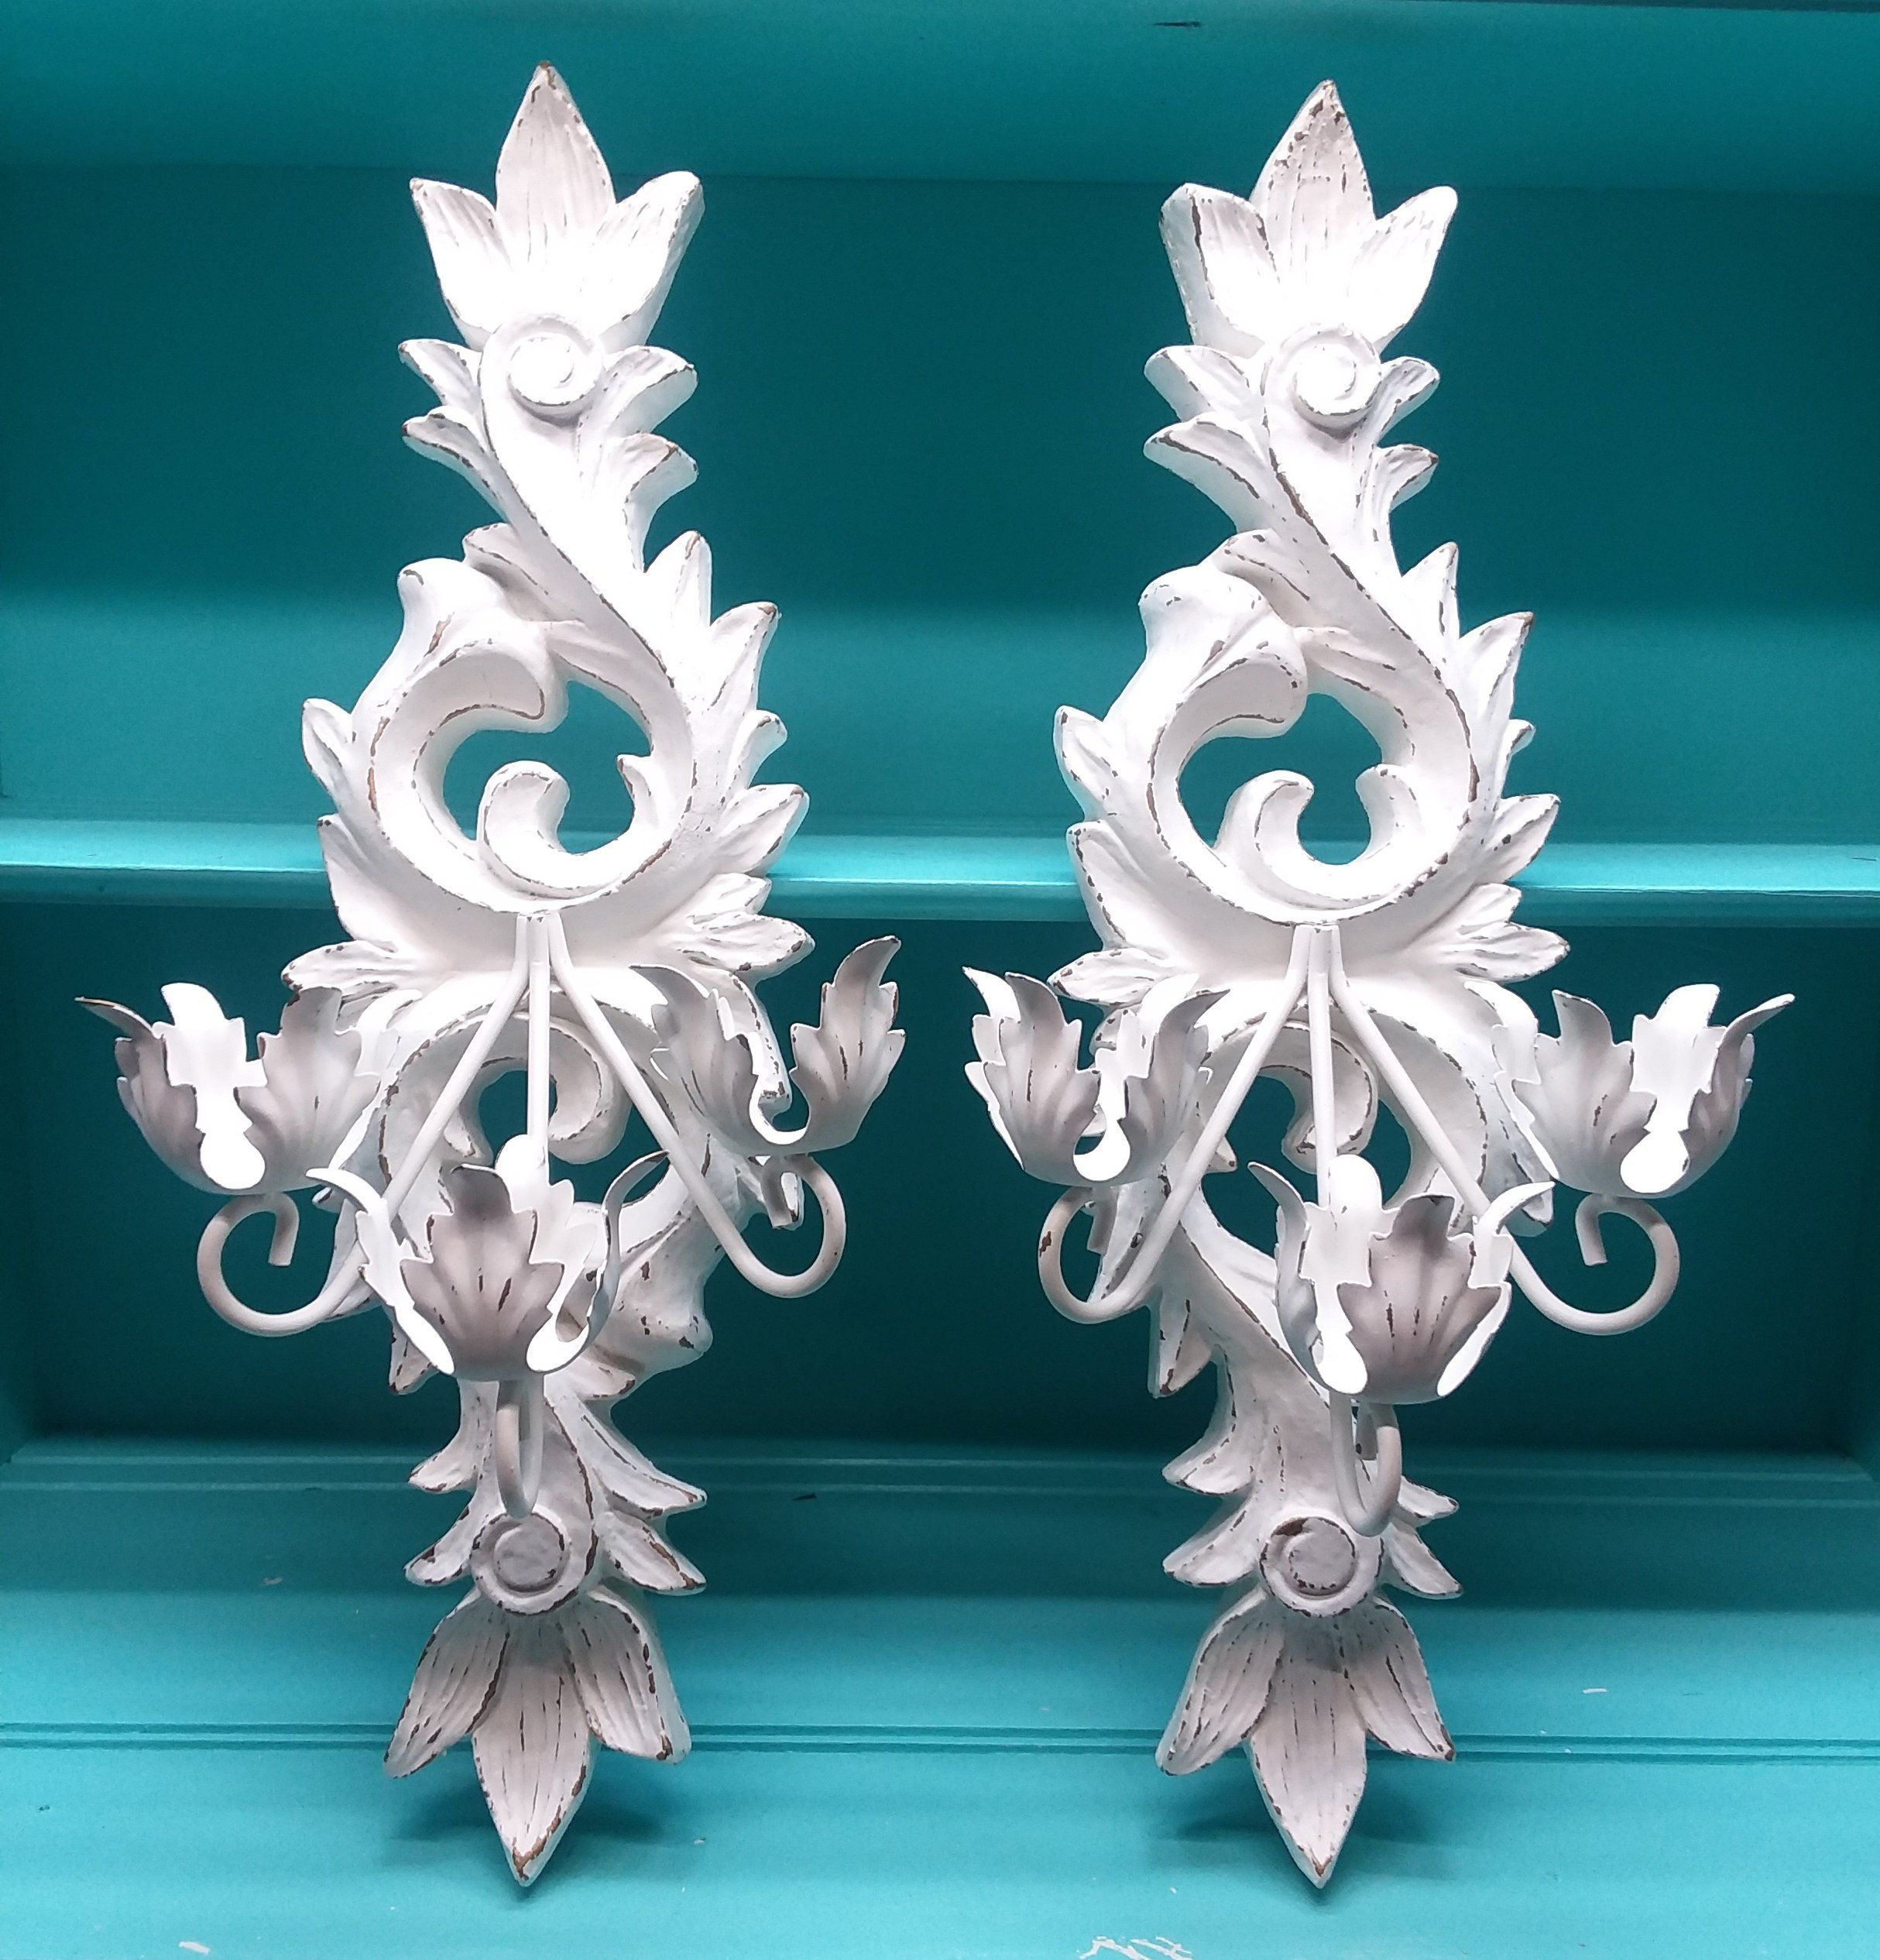 Large Shabby Chic Vintage Ornate Candle Wall Sconces ... on Decorative Wall Sconces Candle Holders Chrome Nickel id=46729